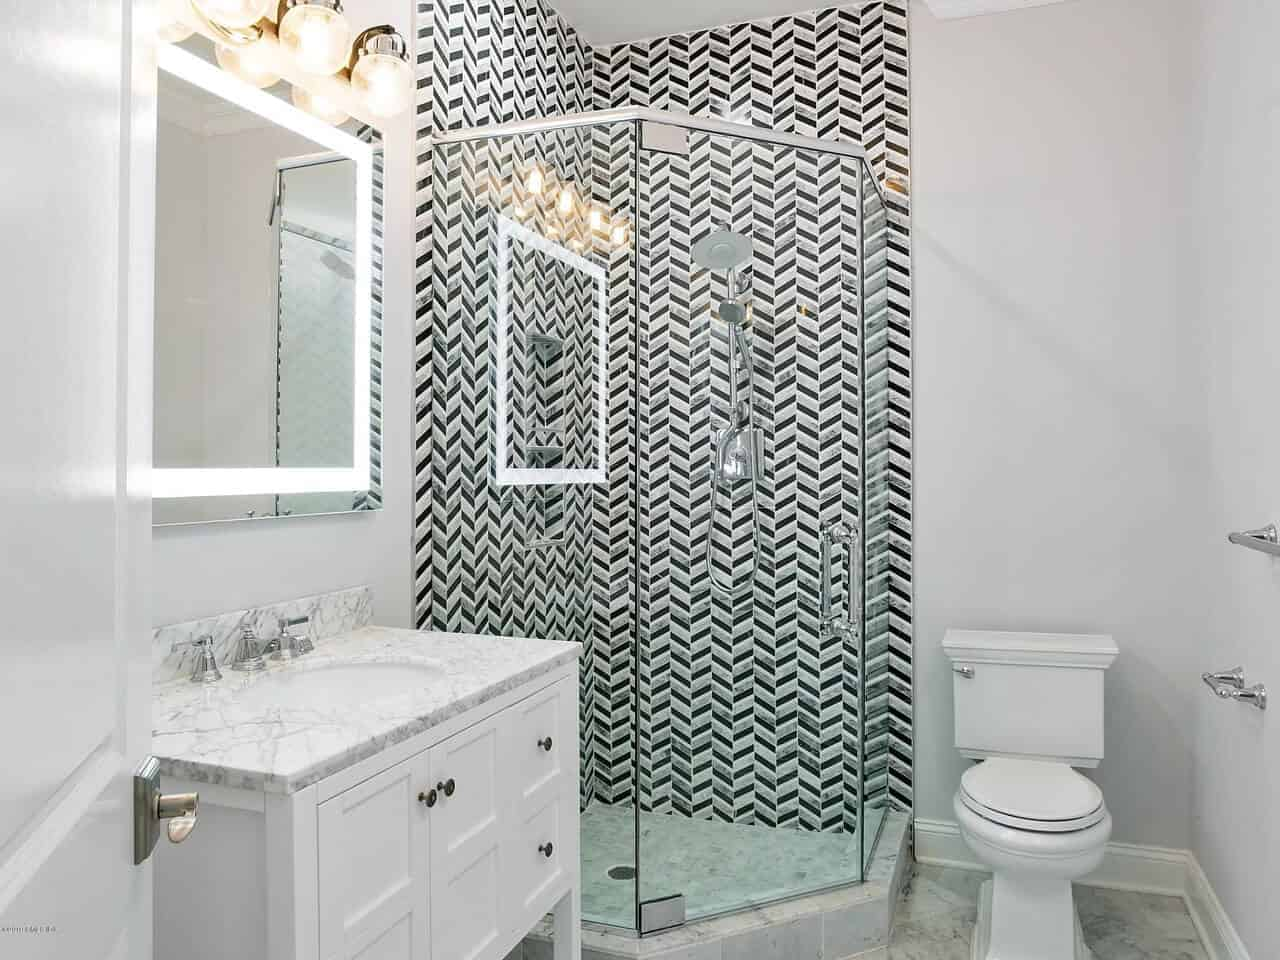 The shower area of this simple bathroom has black and gray wall tiles arranged in a herring bone pattern that gives a nice contrast to the solid white walls that blend with the white toilet and vanity topped with a mirror that has a backlight on its frame.